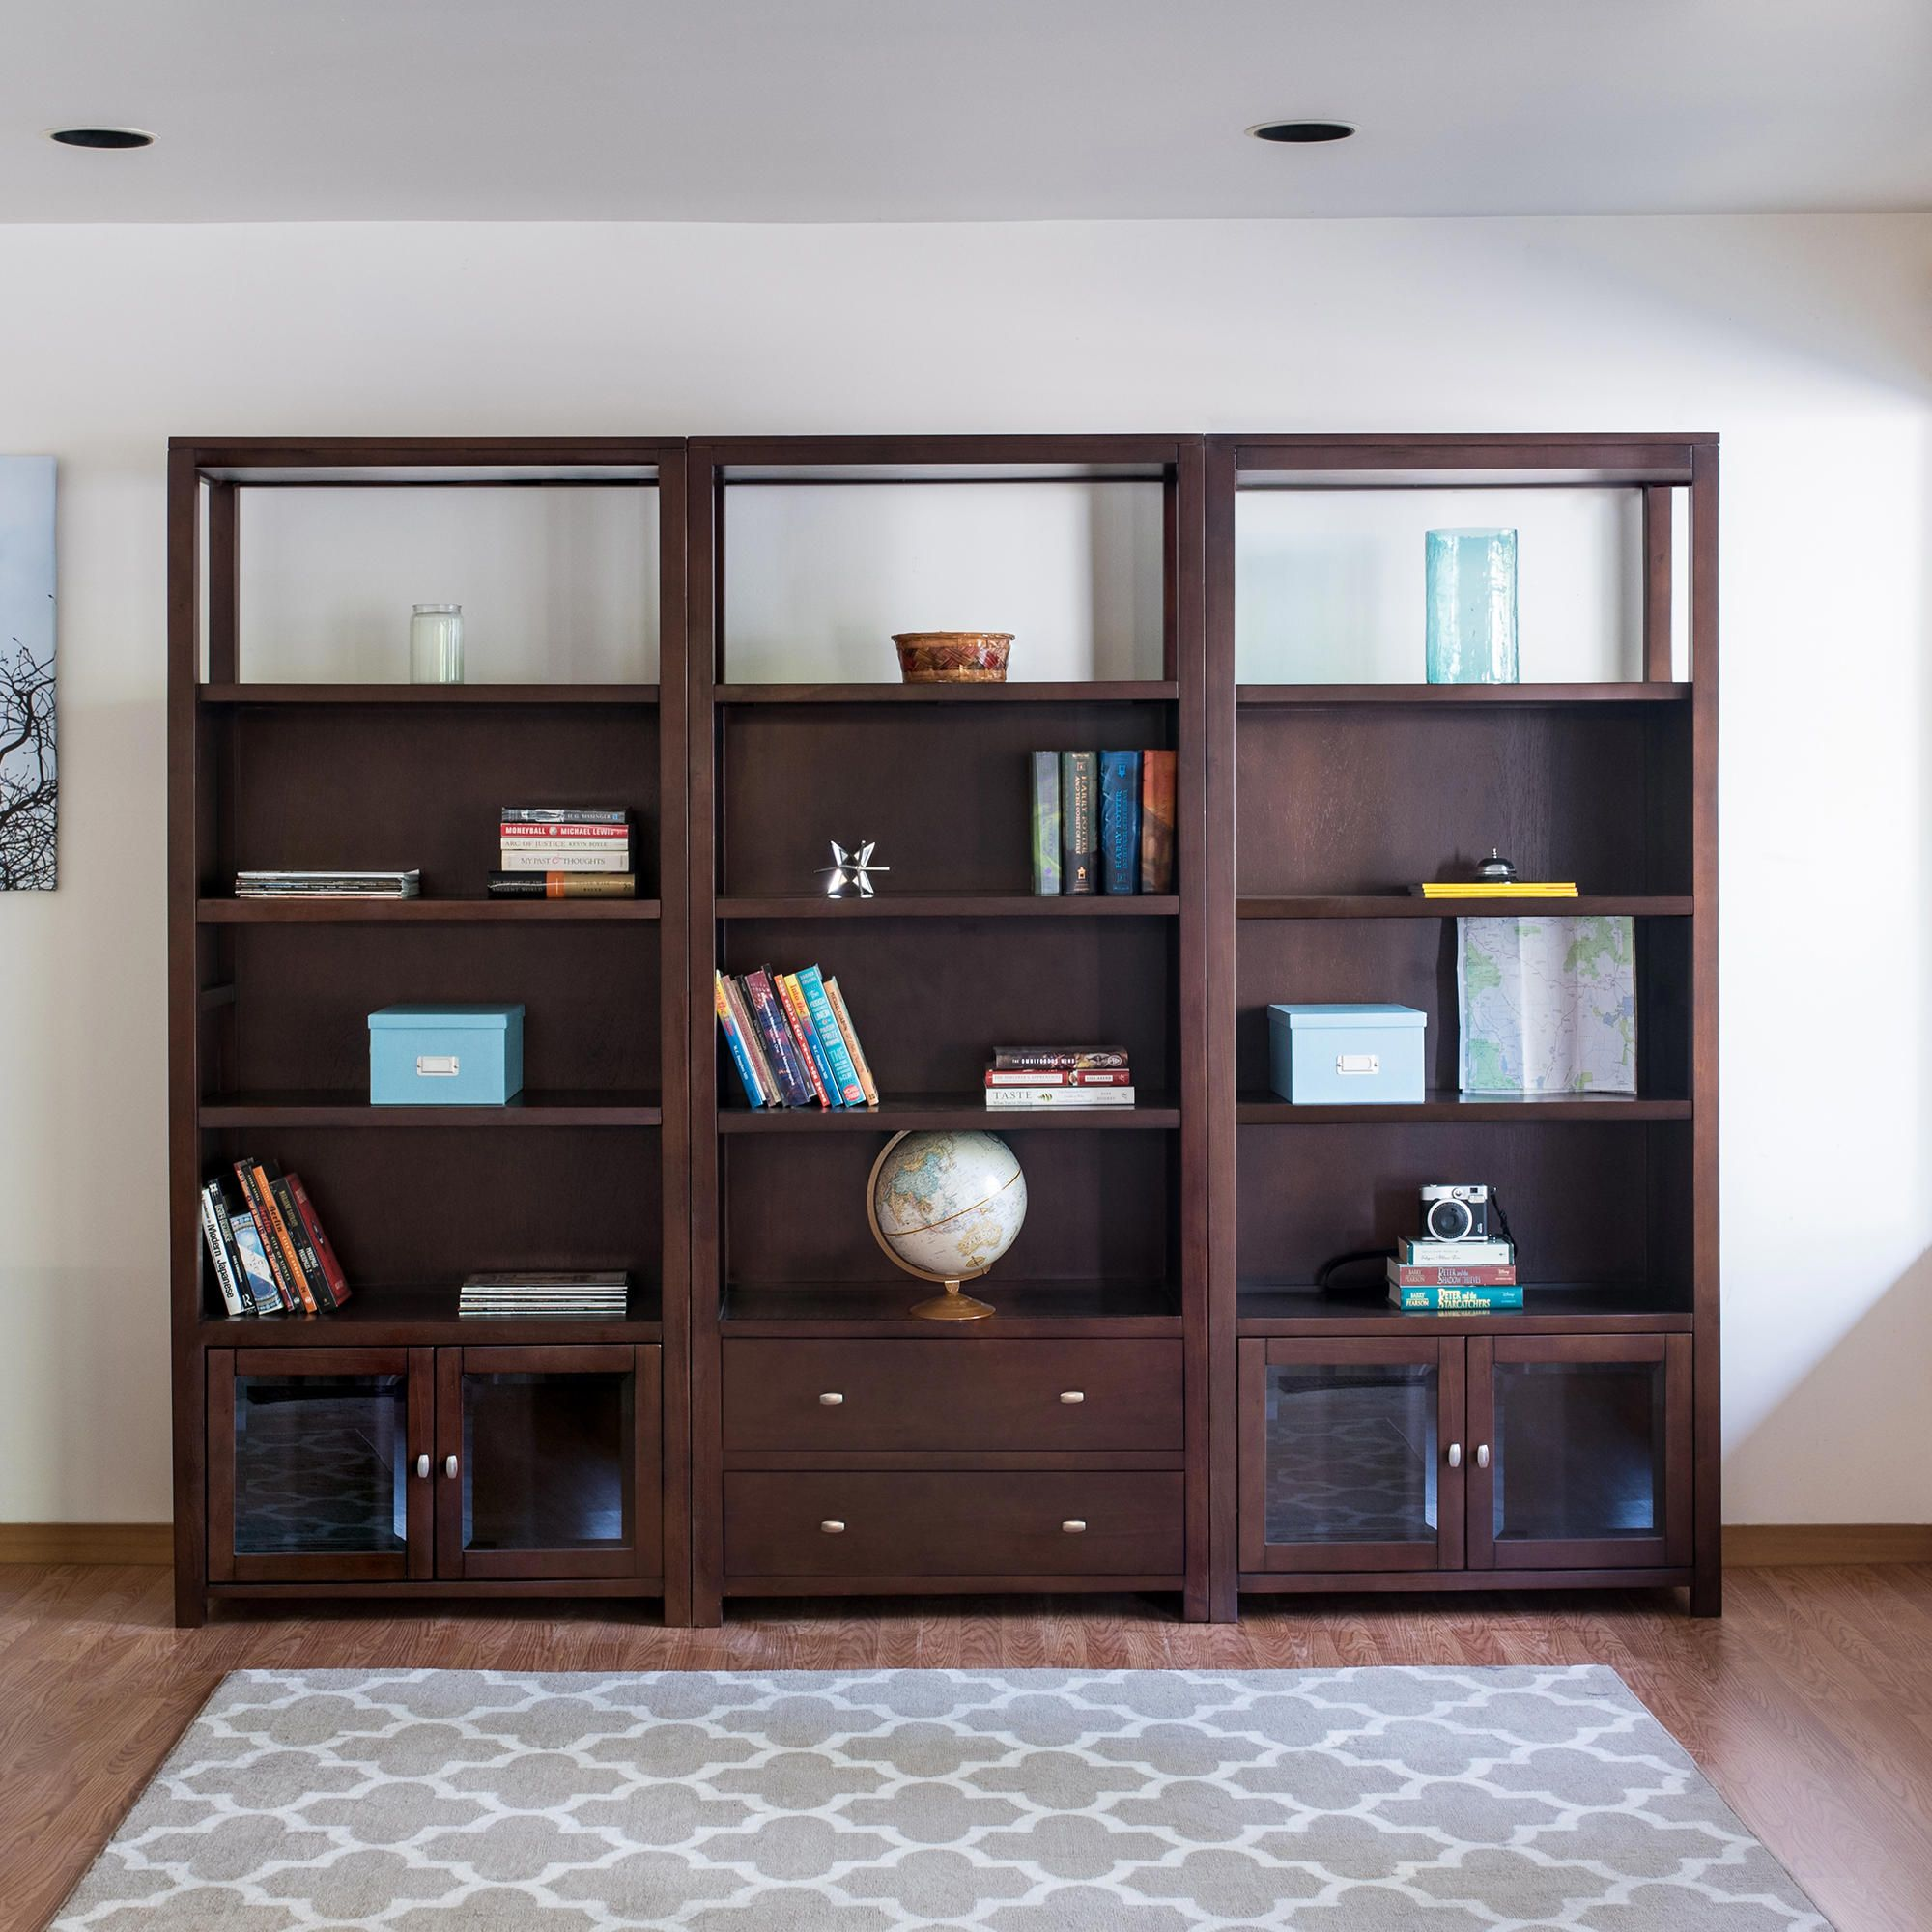 Best Of Decorative Wall Cabinet with Glass Doors